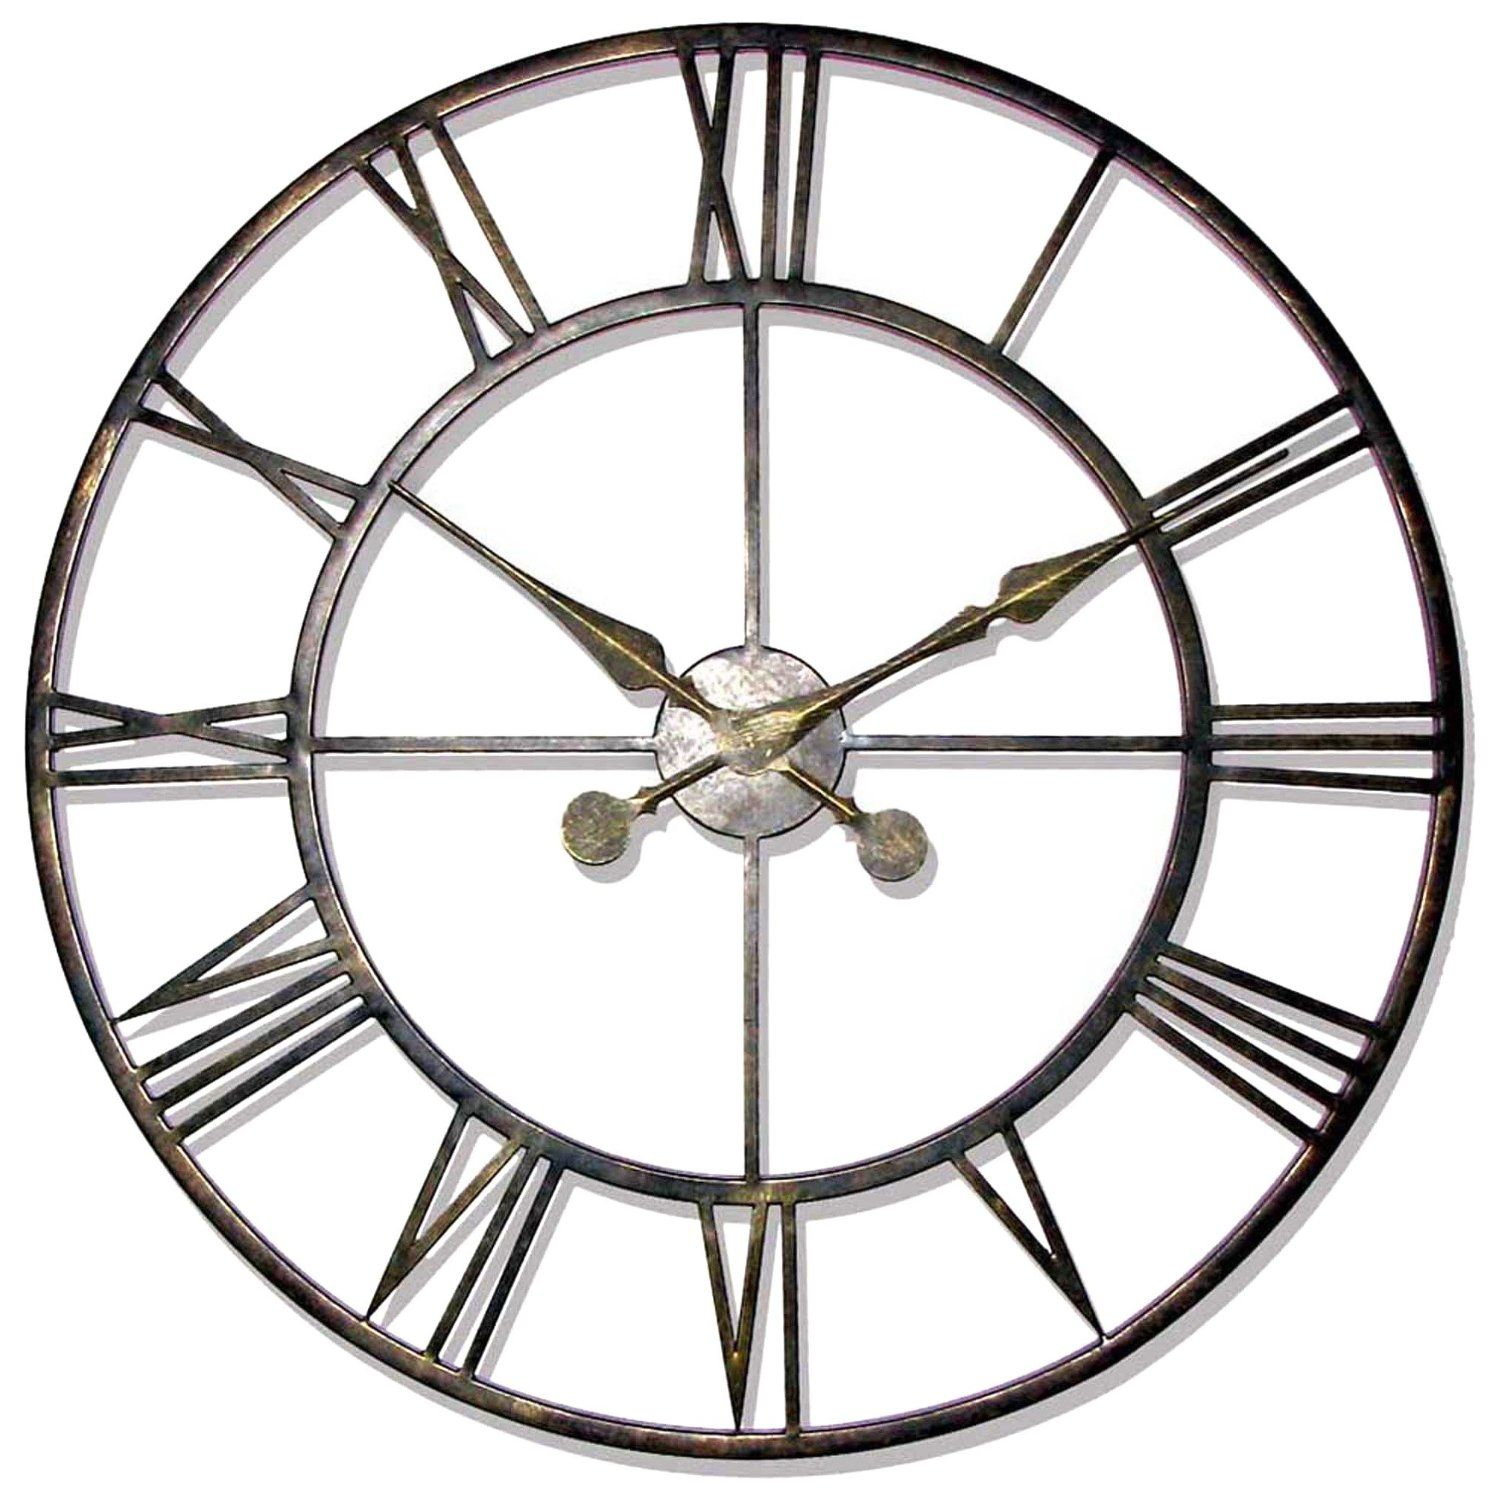 Stylish large wall clocks fun fashionable home accessories and stylish large wall clocks fun fashionable home accessories and decor amipublicfo Choice Image